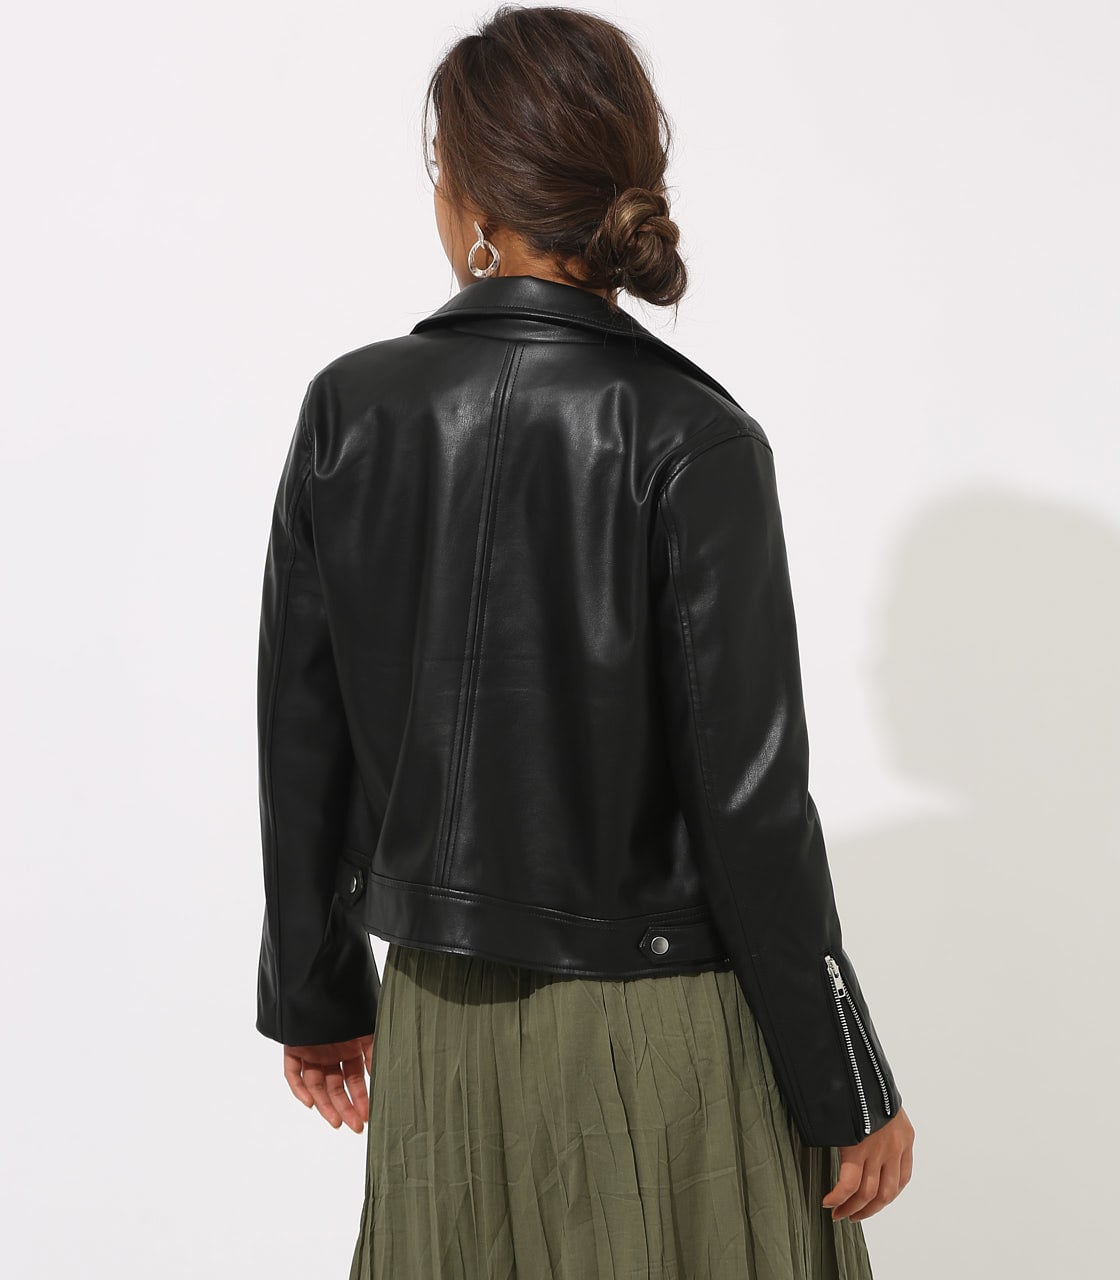 【AZUL BY MOUSSY】フェイクレザーライダース 詳細画像 BLK 7